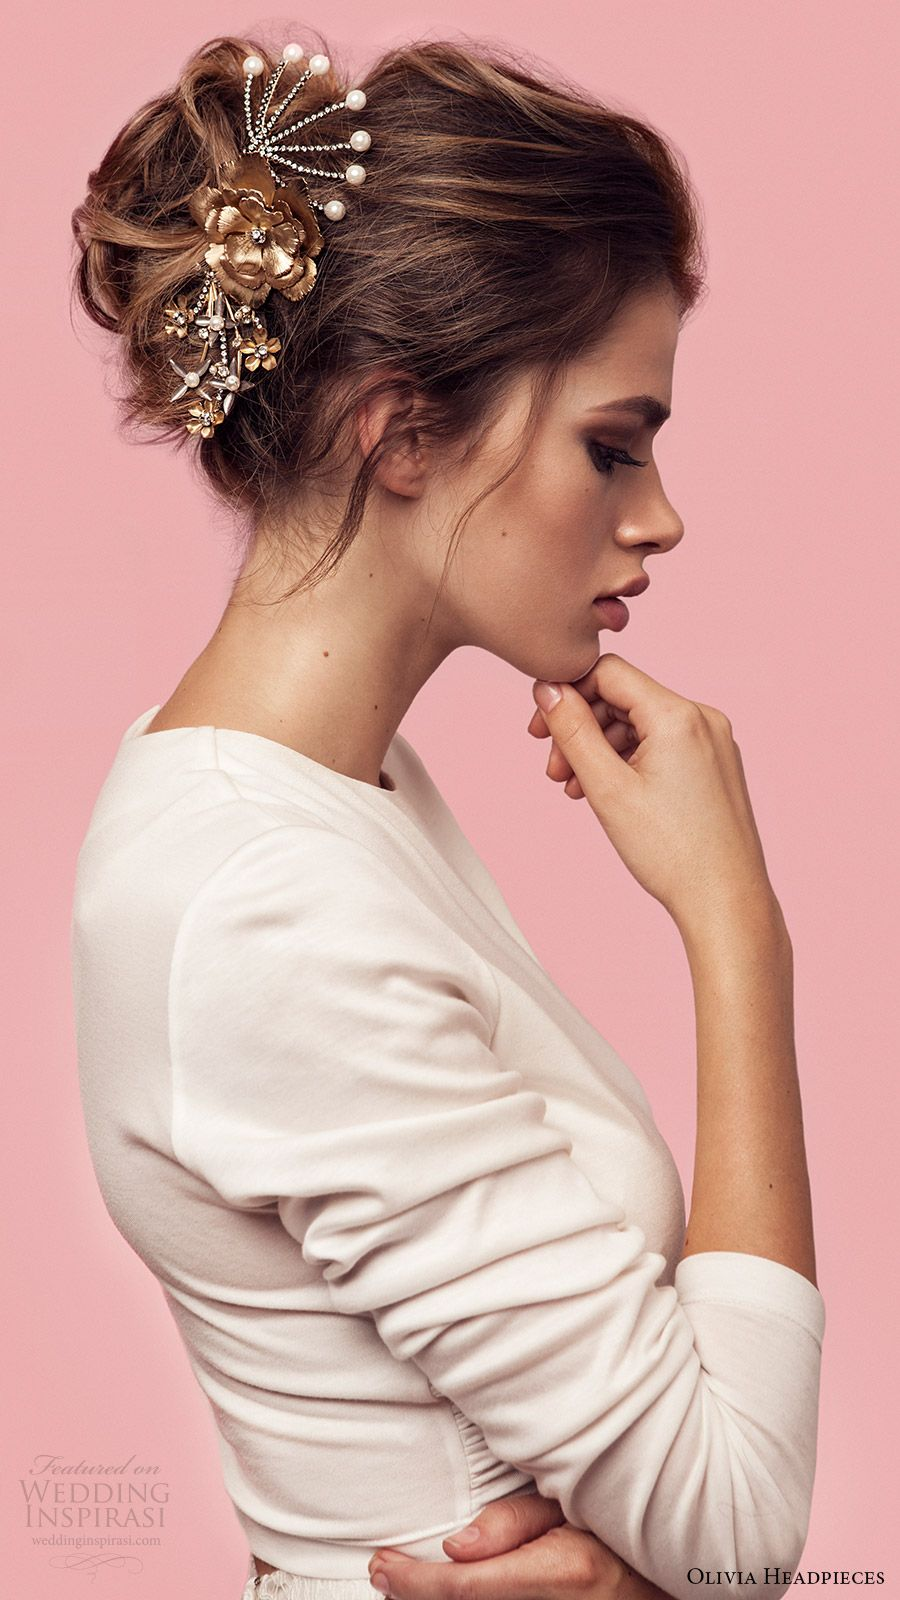 Olivia Headpieces 2017 Bridal Accessories Collection | Wild hair ...